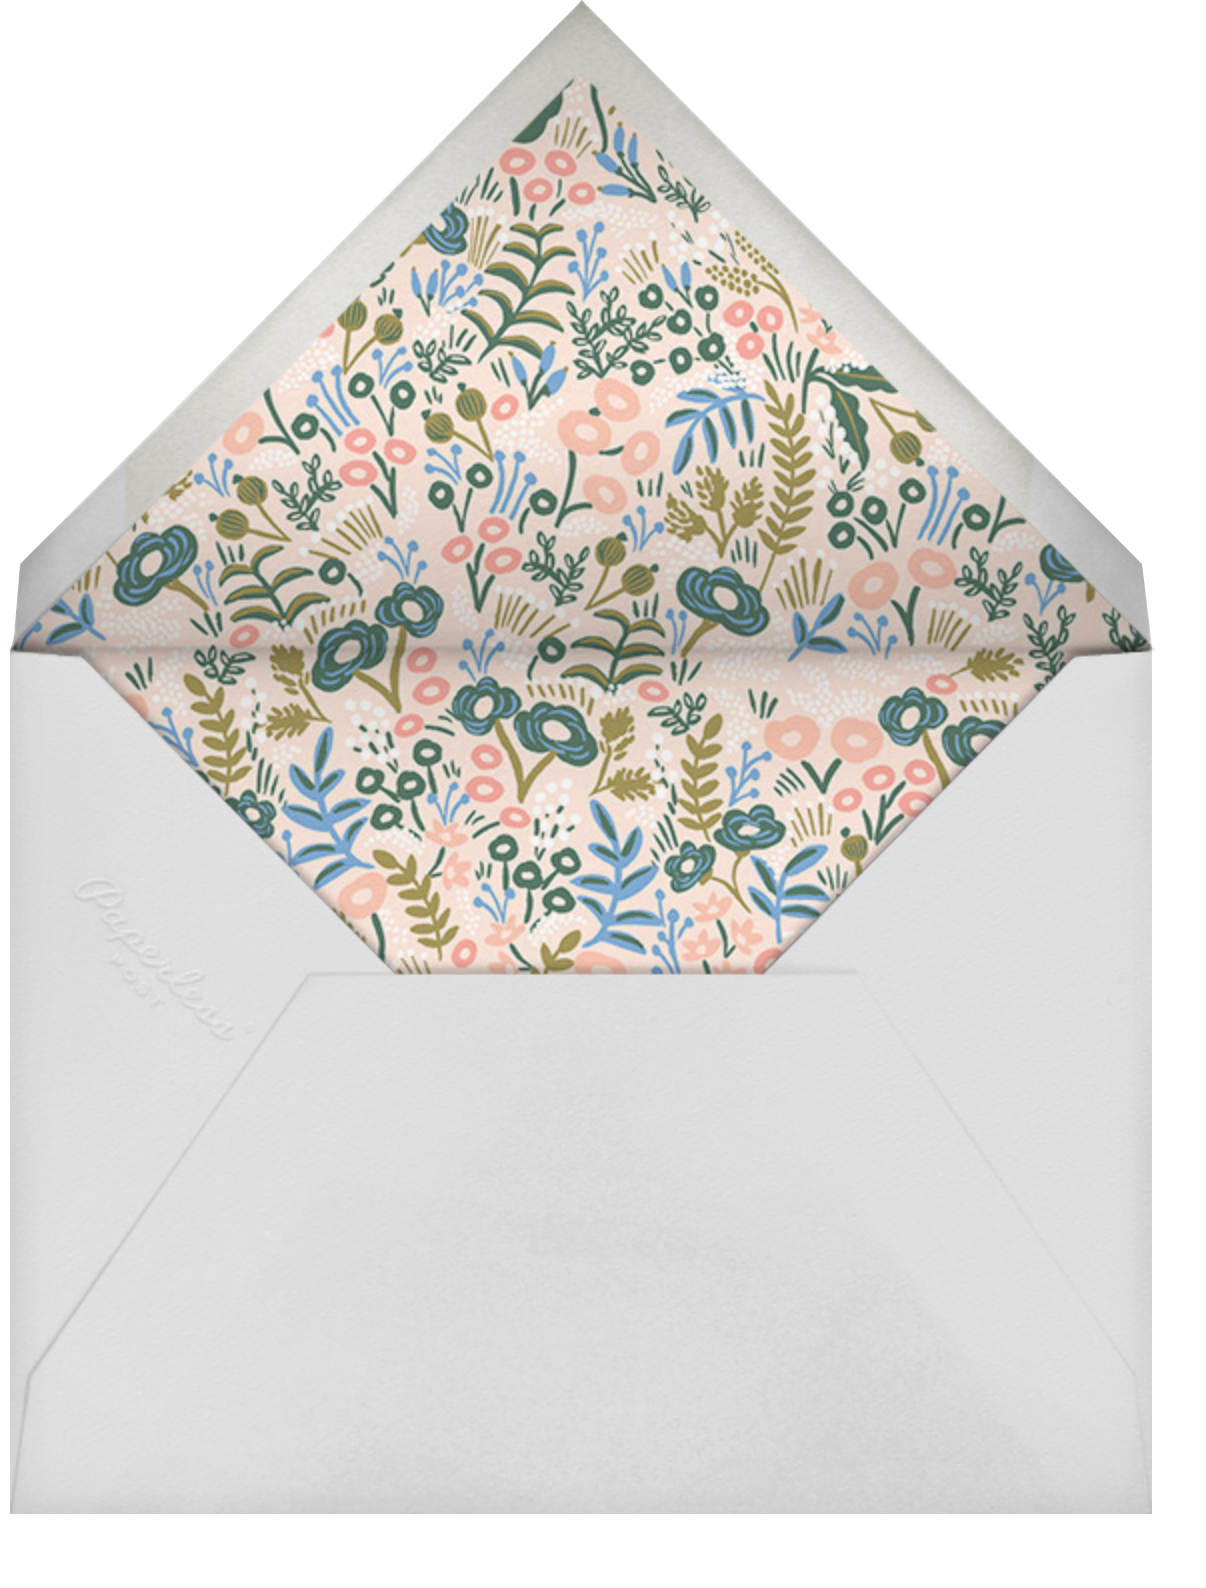 Floral Tapestry - Pavlova - Rifle Paper Co. - Mother's Day - envelope back